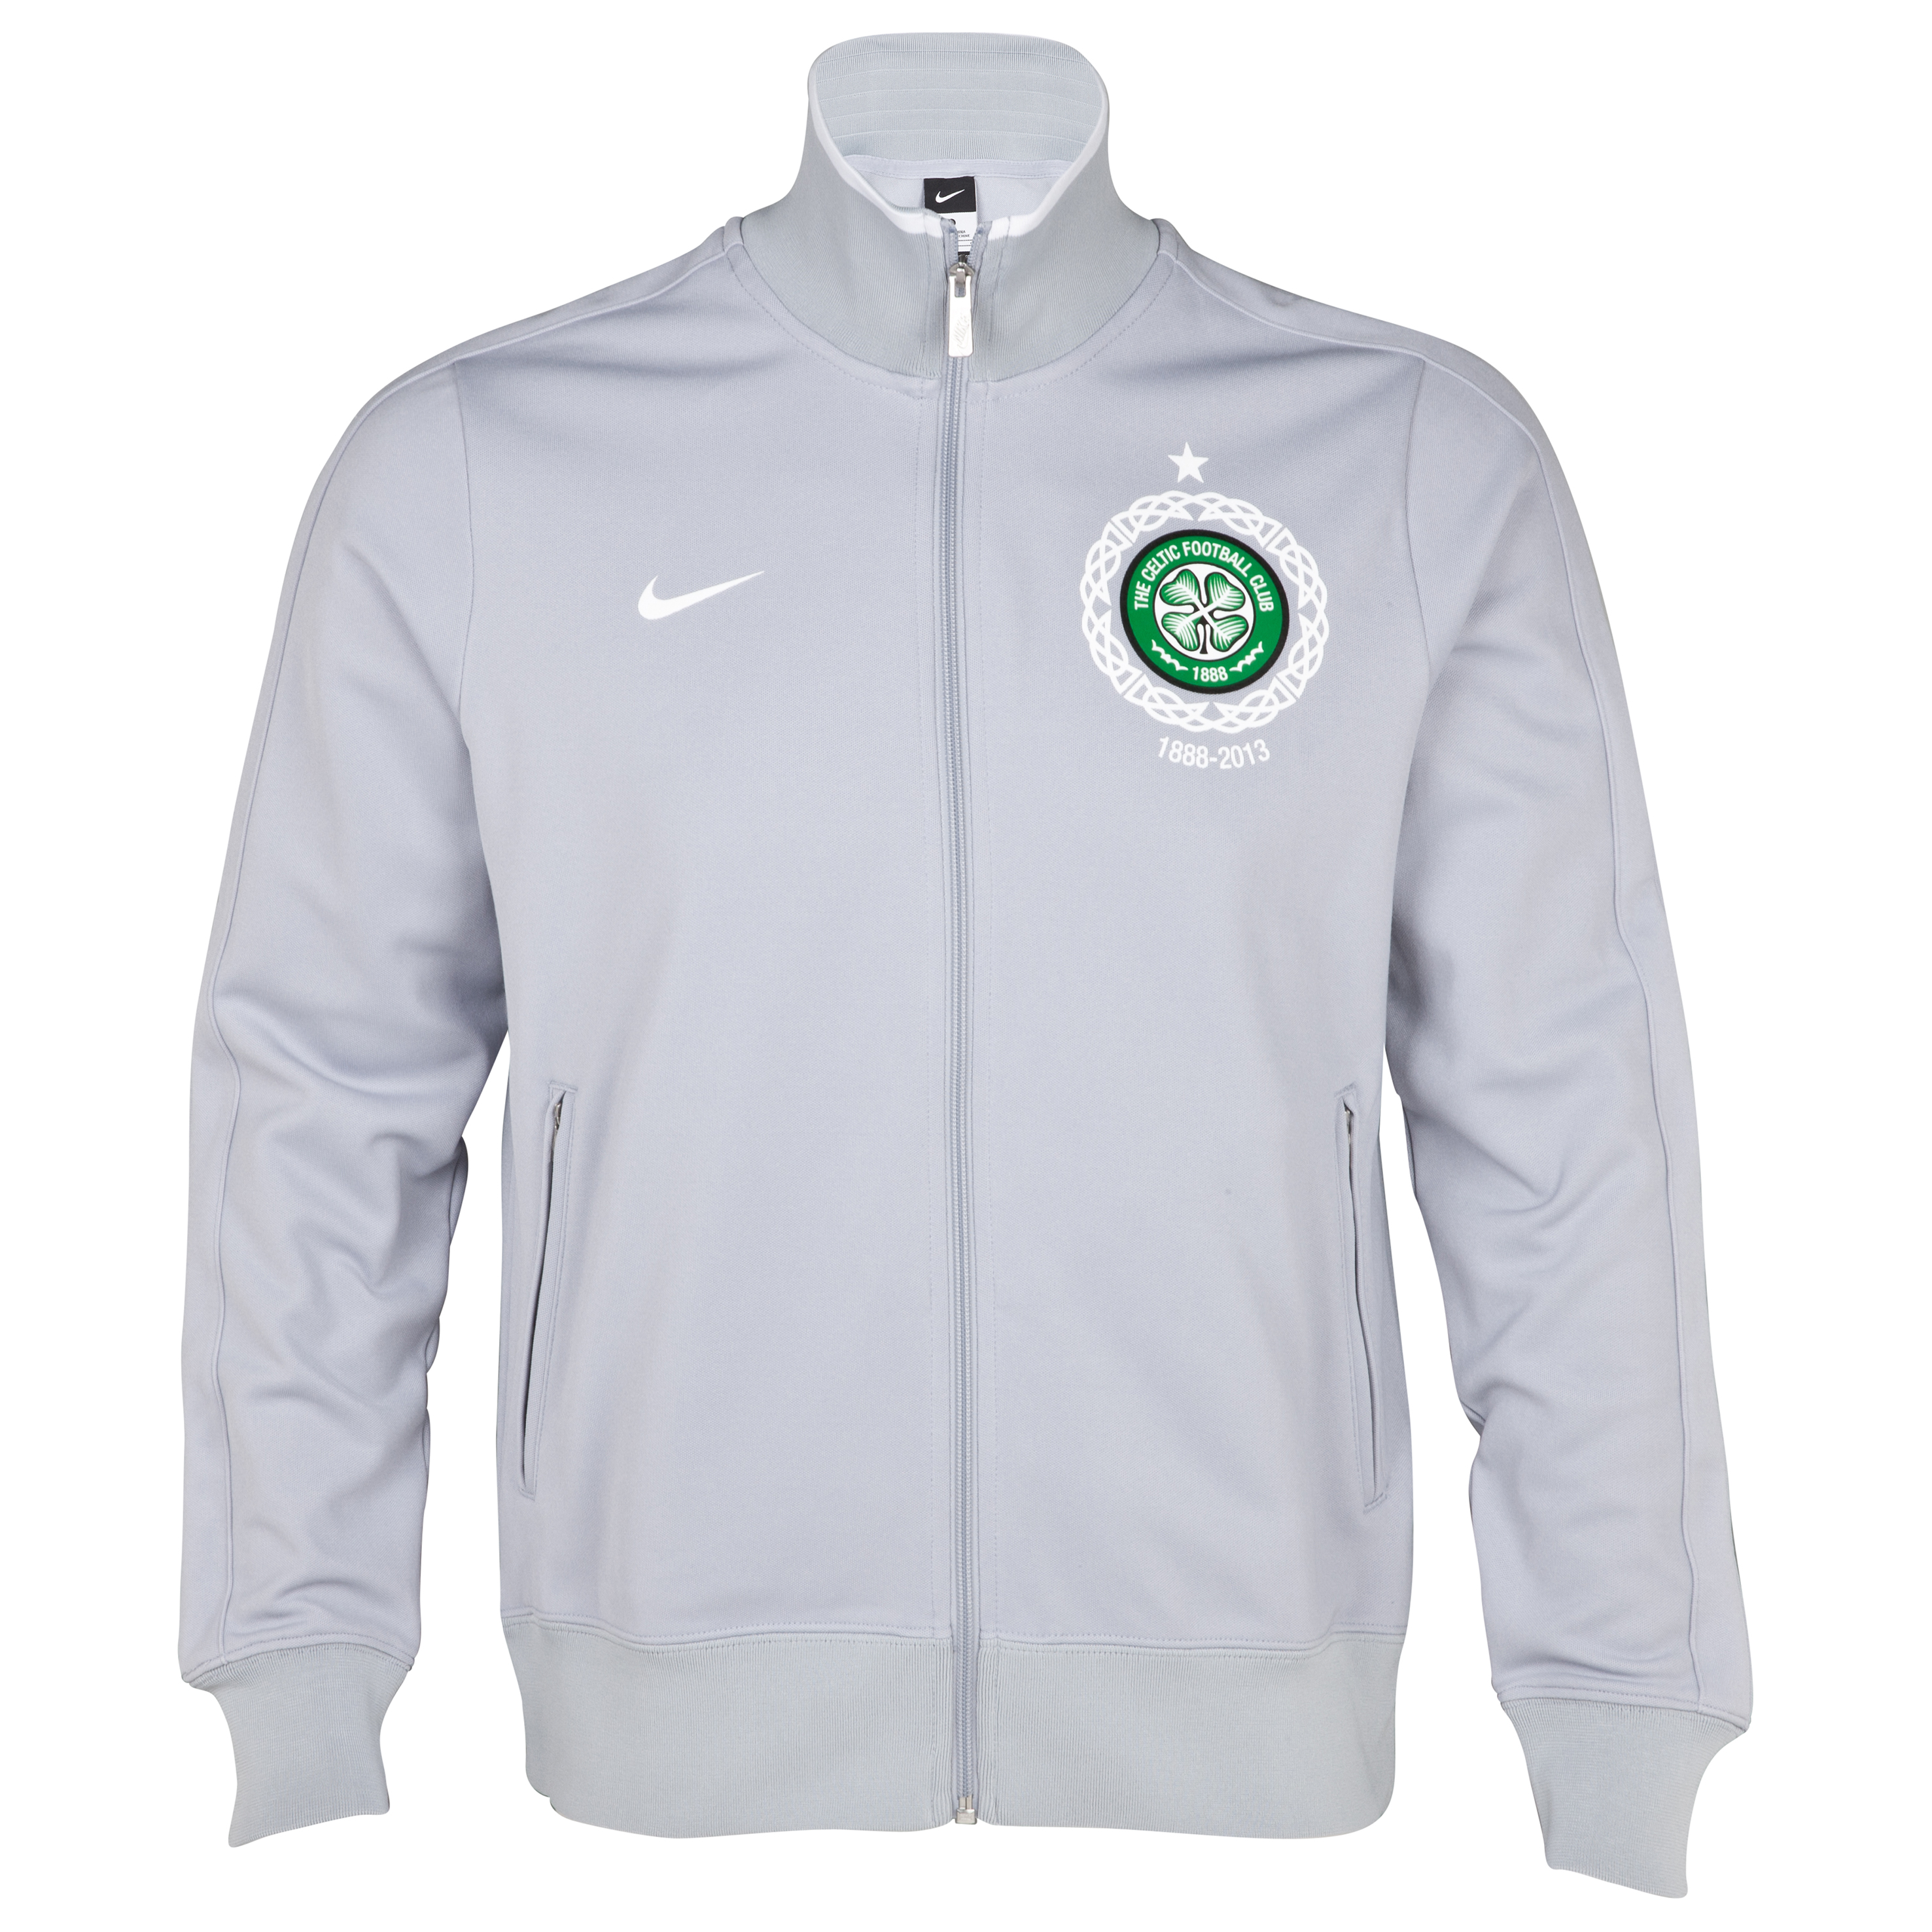 Celtic Authentic N98 Track Jacket - Wolf Grey/White